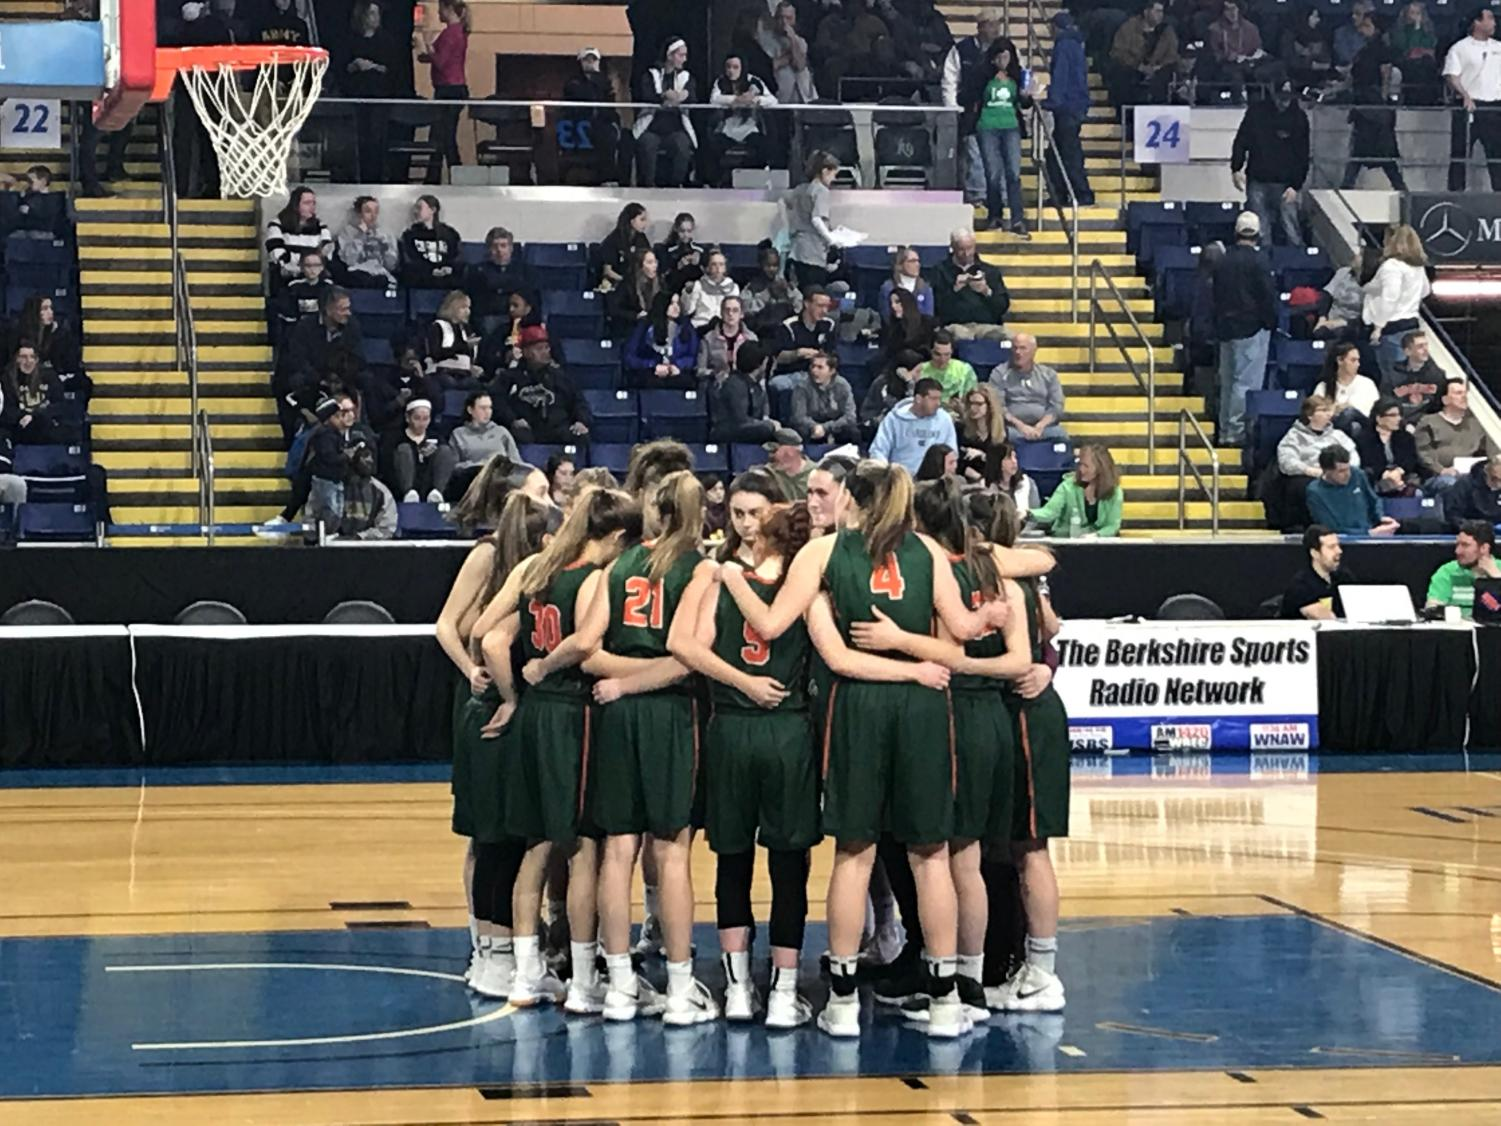 The girls huddle in effort to rally during the final.